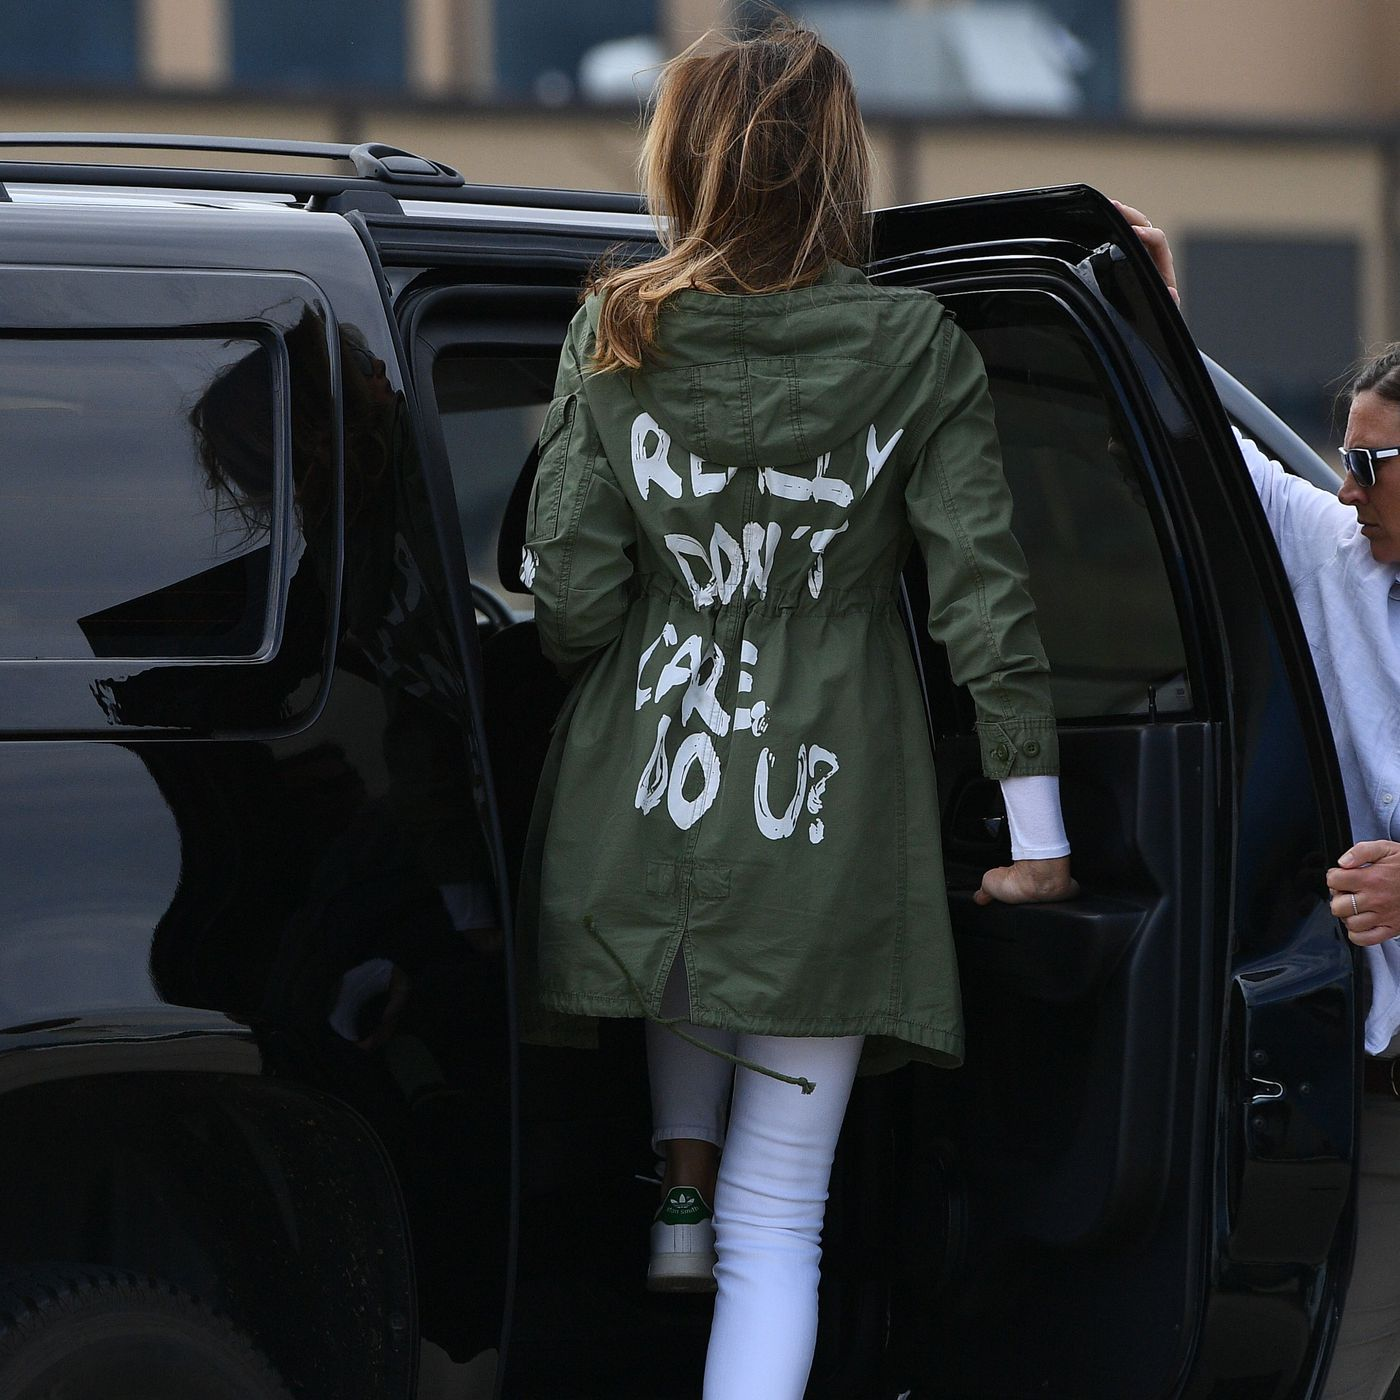 5dbd35d6 Melania Trump's jackets and heels are how we try to understand her - Vox